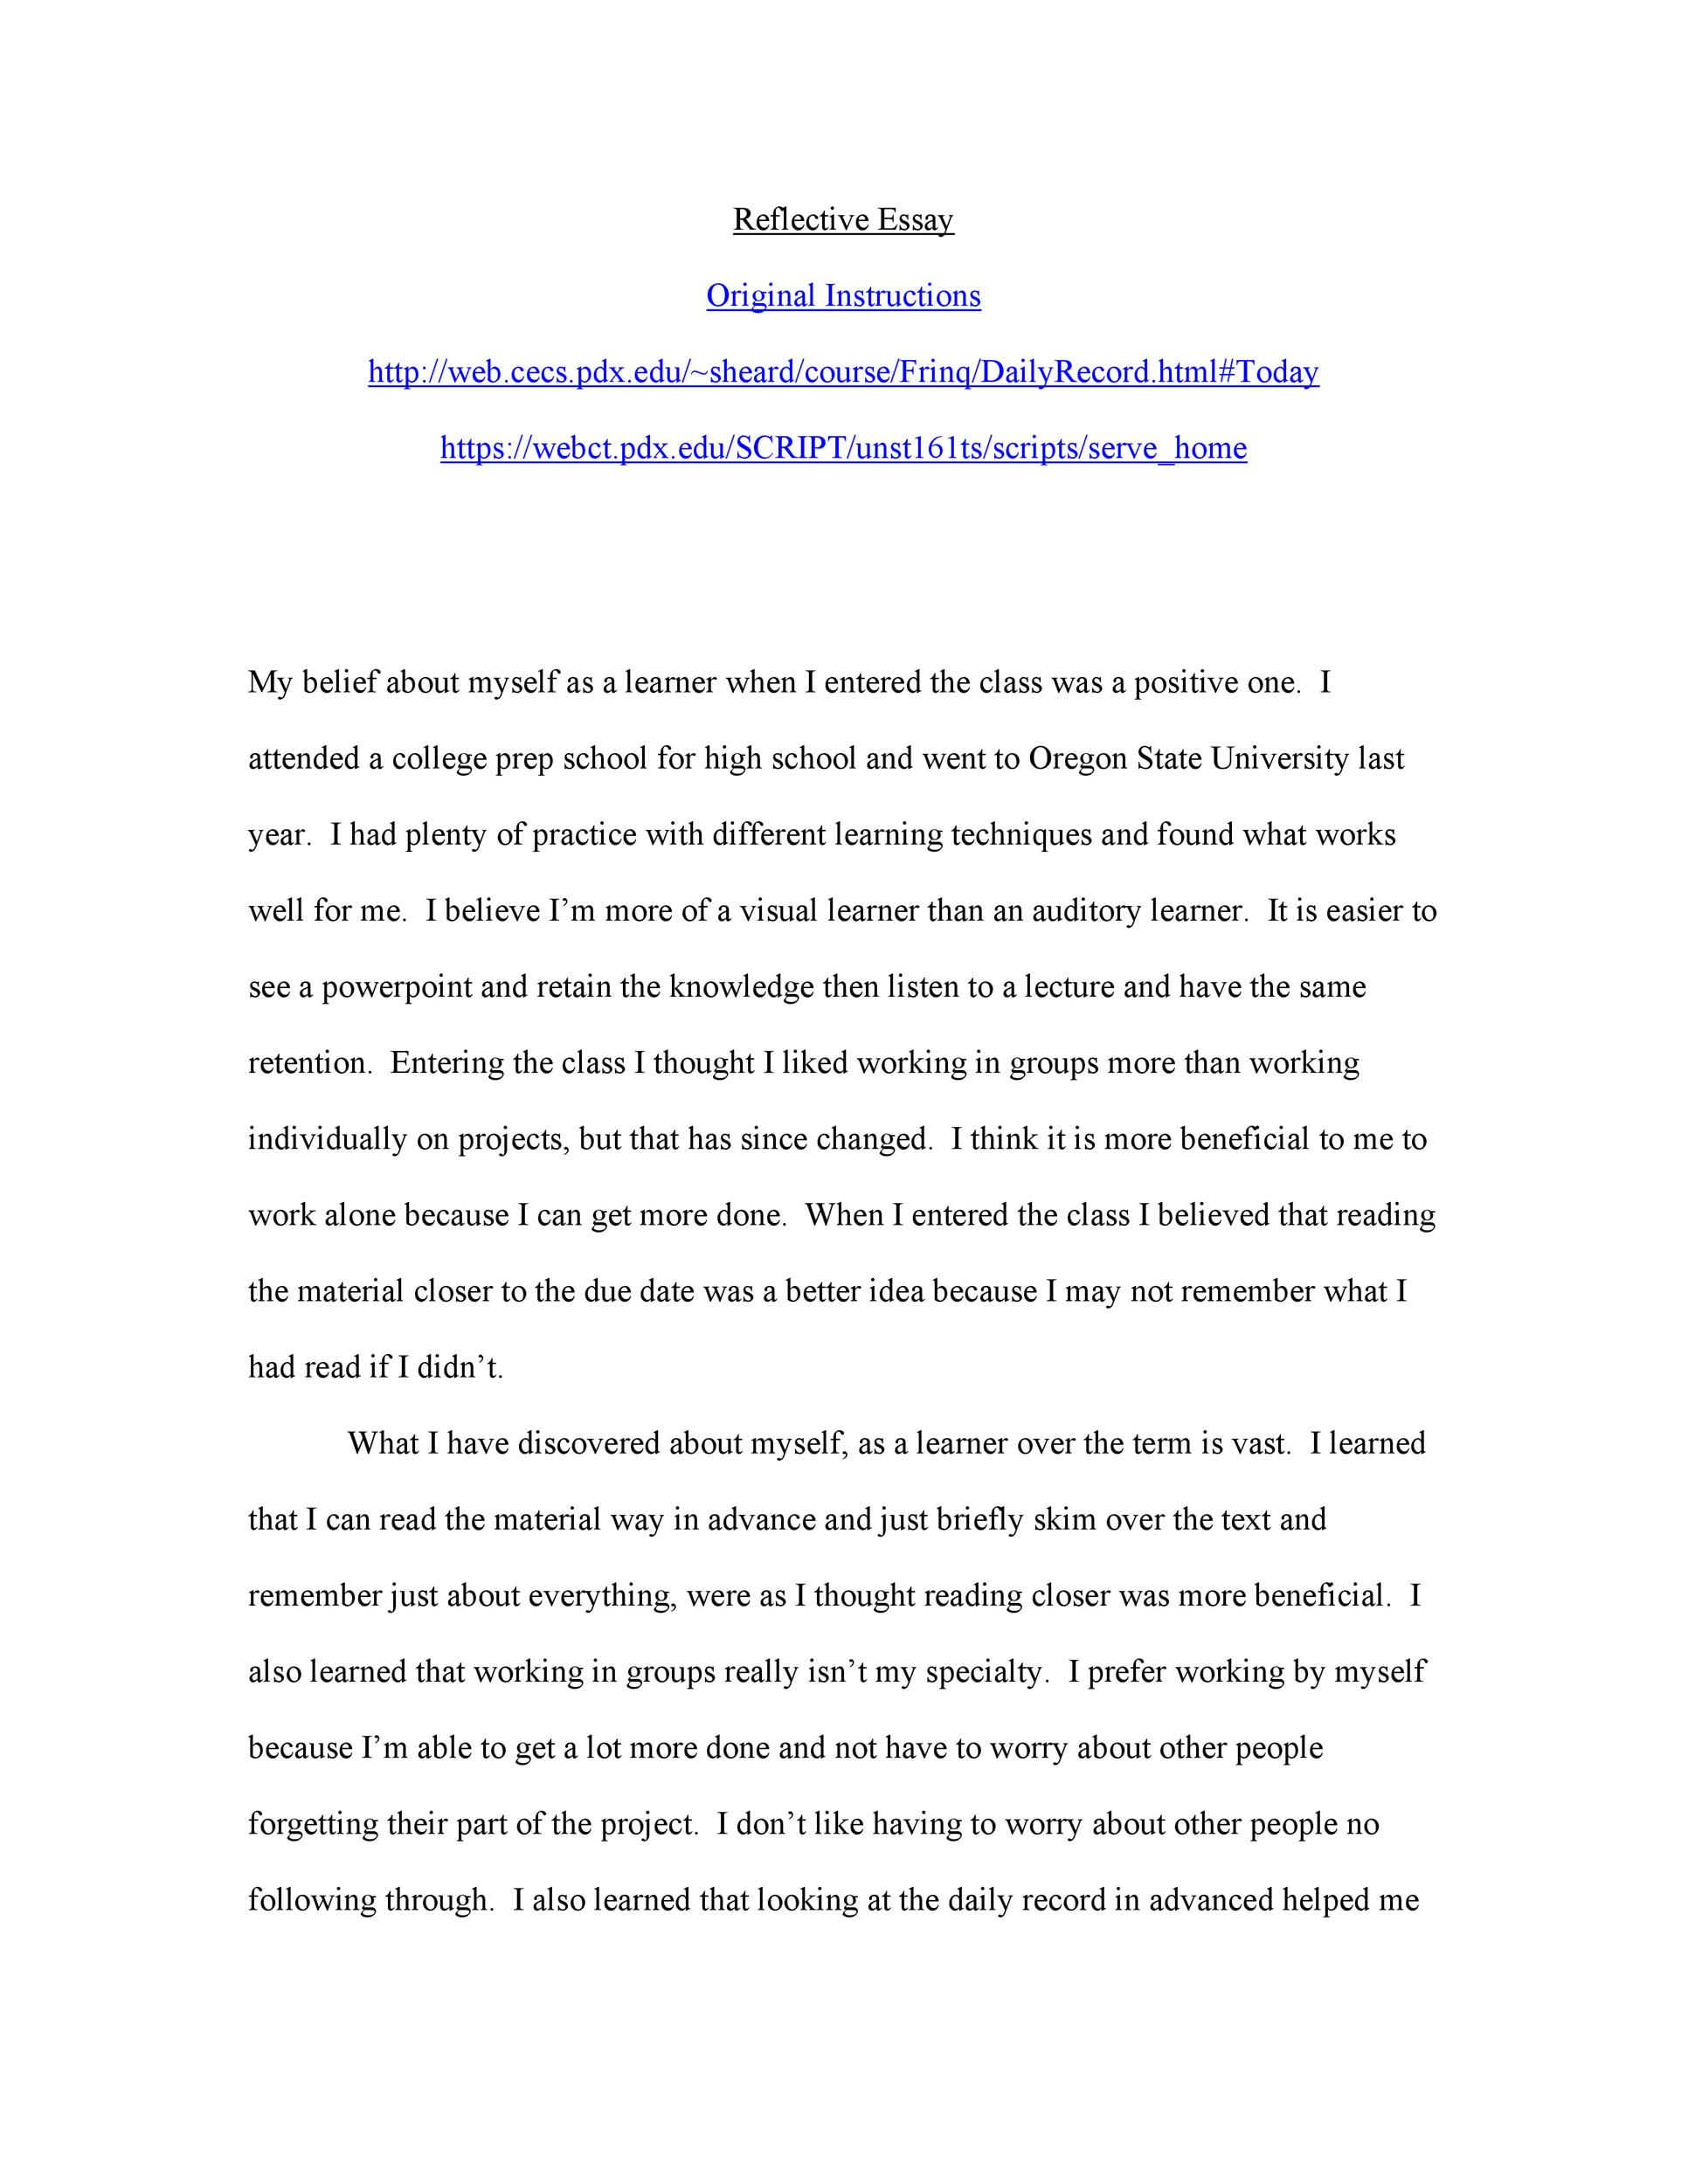 Reflection essay about a class